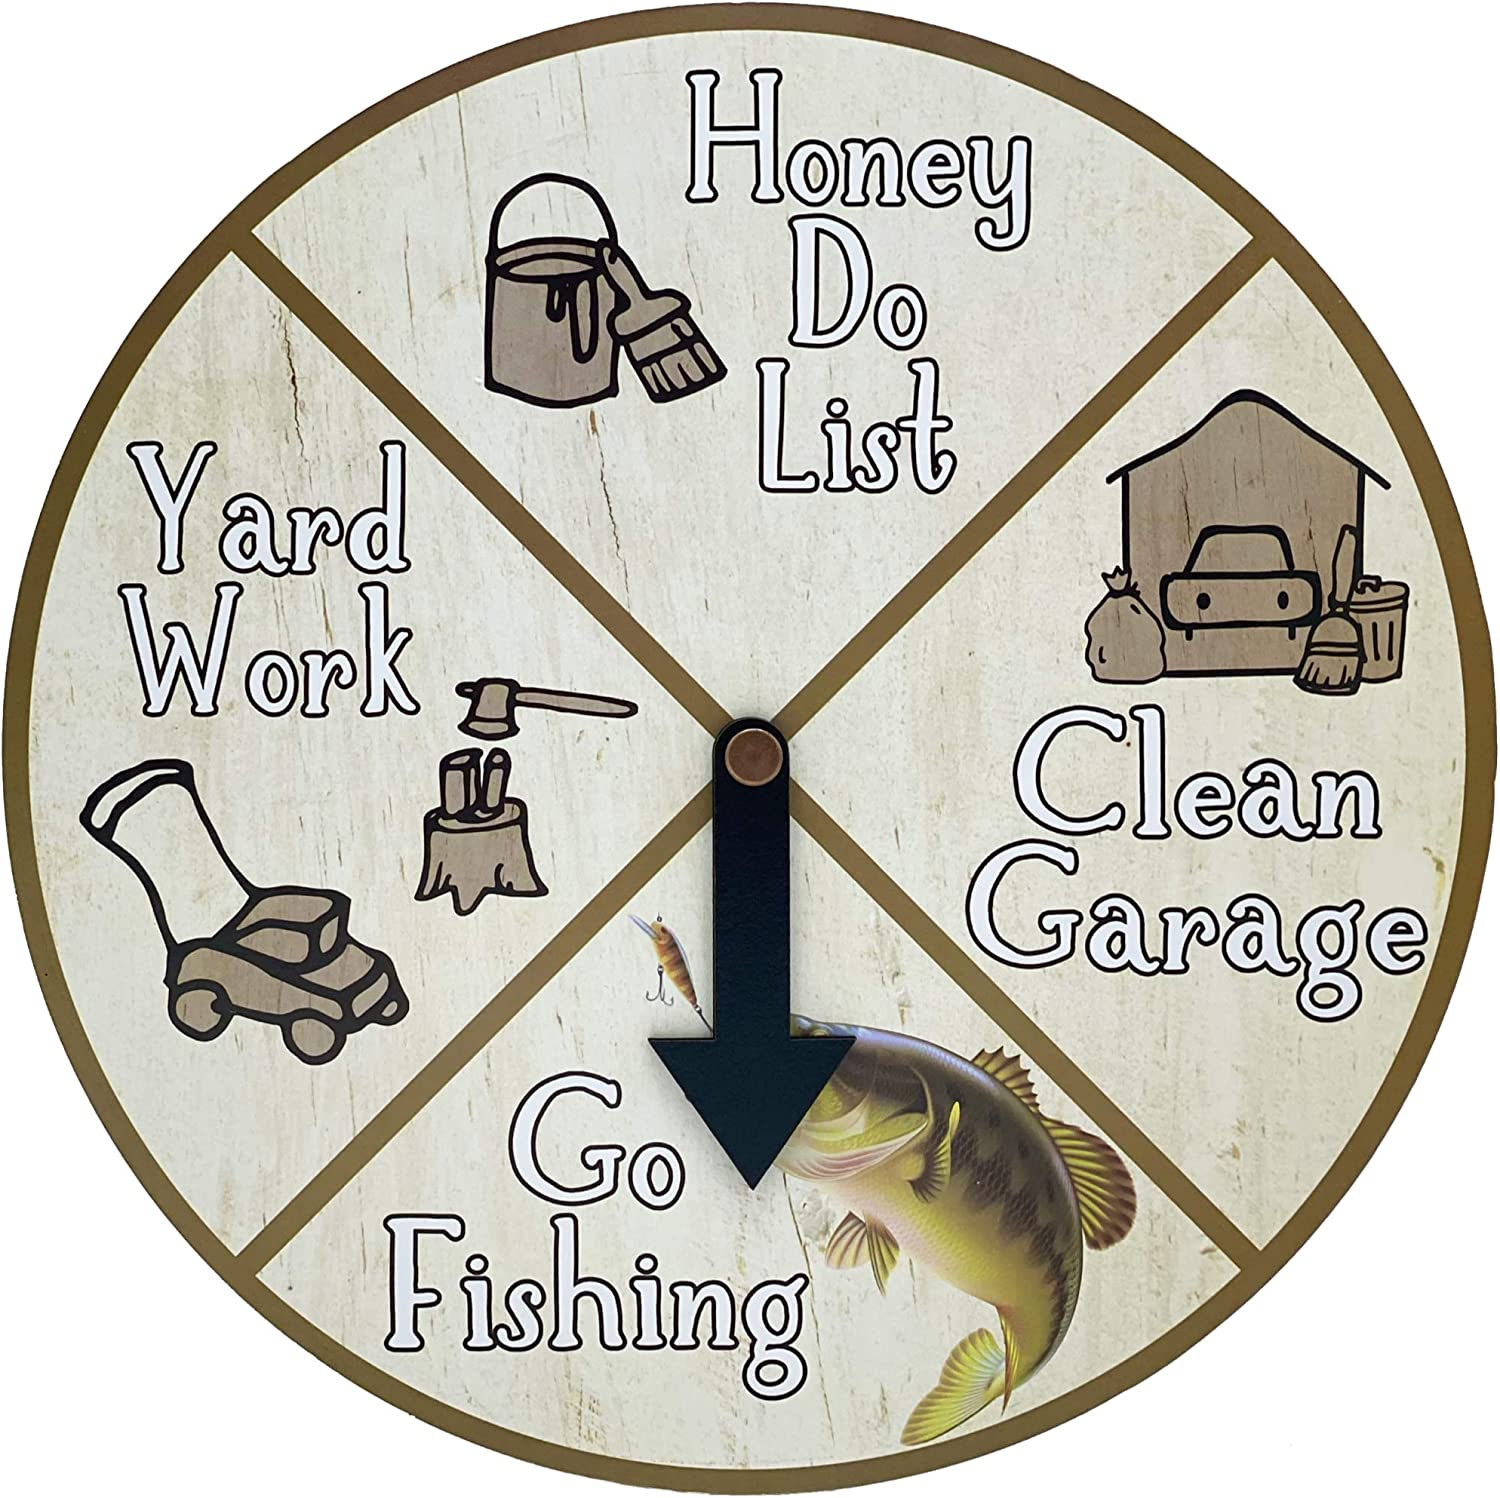 KANALOA Perfect Day Planner - Go Fishing Spinner Game - Funny Desk, Shelf or Wall Hanging Décor for Home, Bar or Office, Fishing Gifts for Men or Women